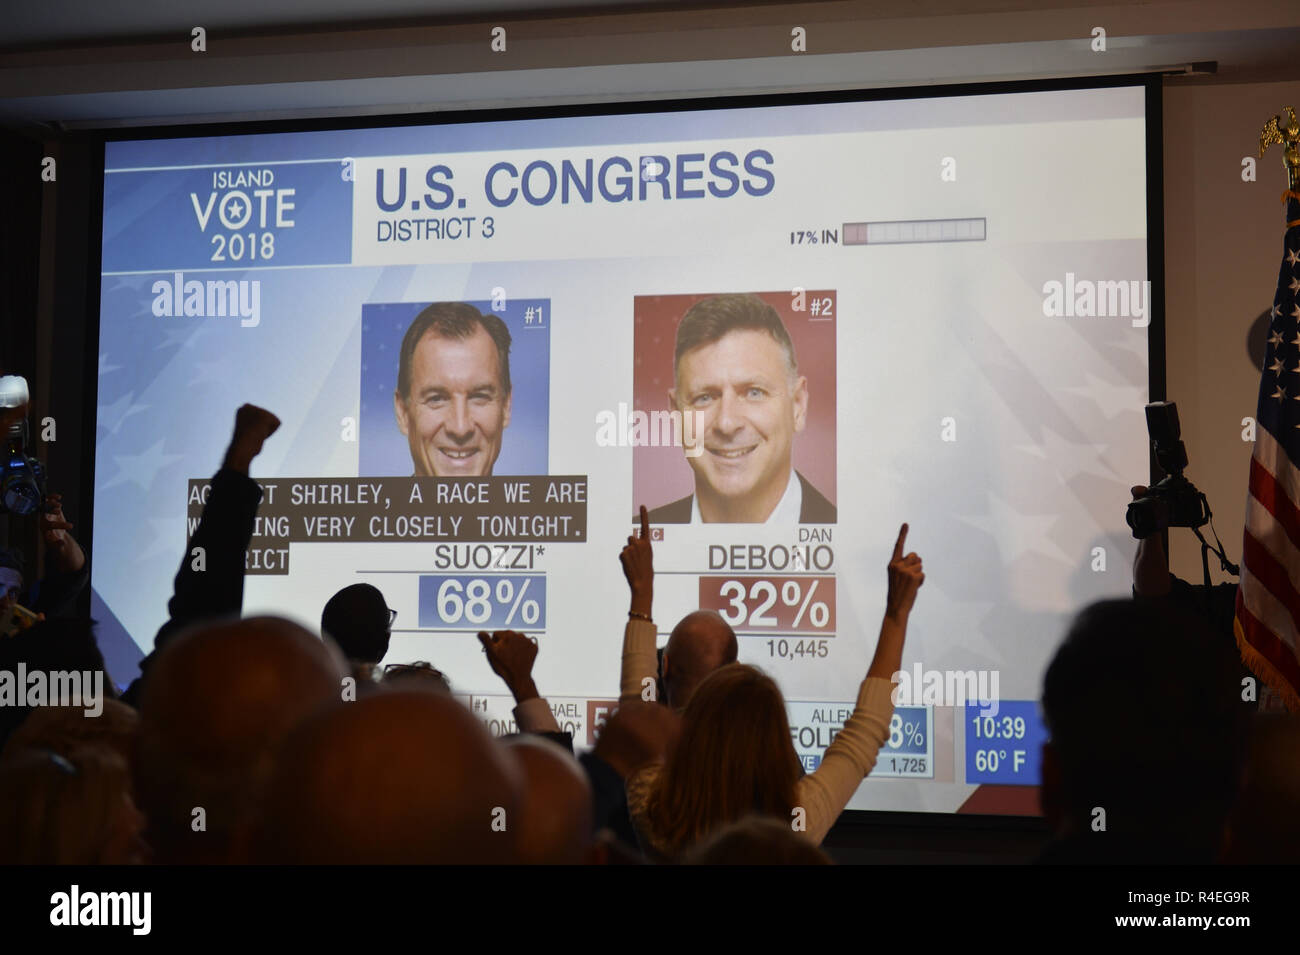 November 6, 2018 - Garden City, New York, United States - Nassau County Democrats watch Election Day results on large screen monitor at Garden City Hotel, Long Island. People lift their arms and cheer as results that U.S. Congressman Tom Suozzi is projected to win over opponent Dan DeBono. Close caption info is about closely watched Congressional race between Liuba Grechen Shirley & incumbent. (Credit Image: © Ann Parry/ZUMA Wire) Stock Photo